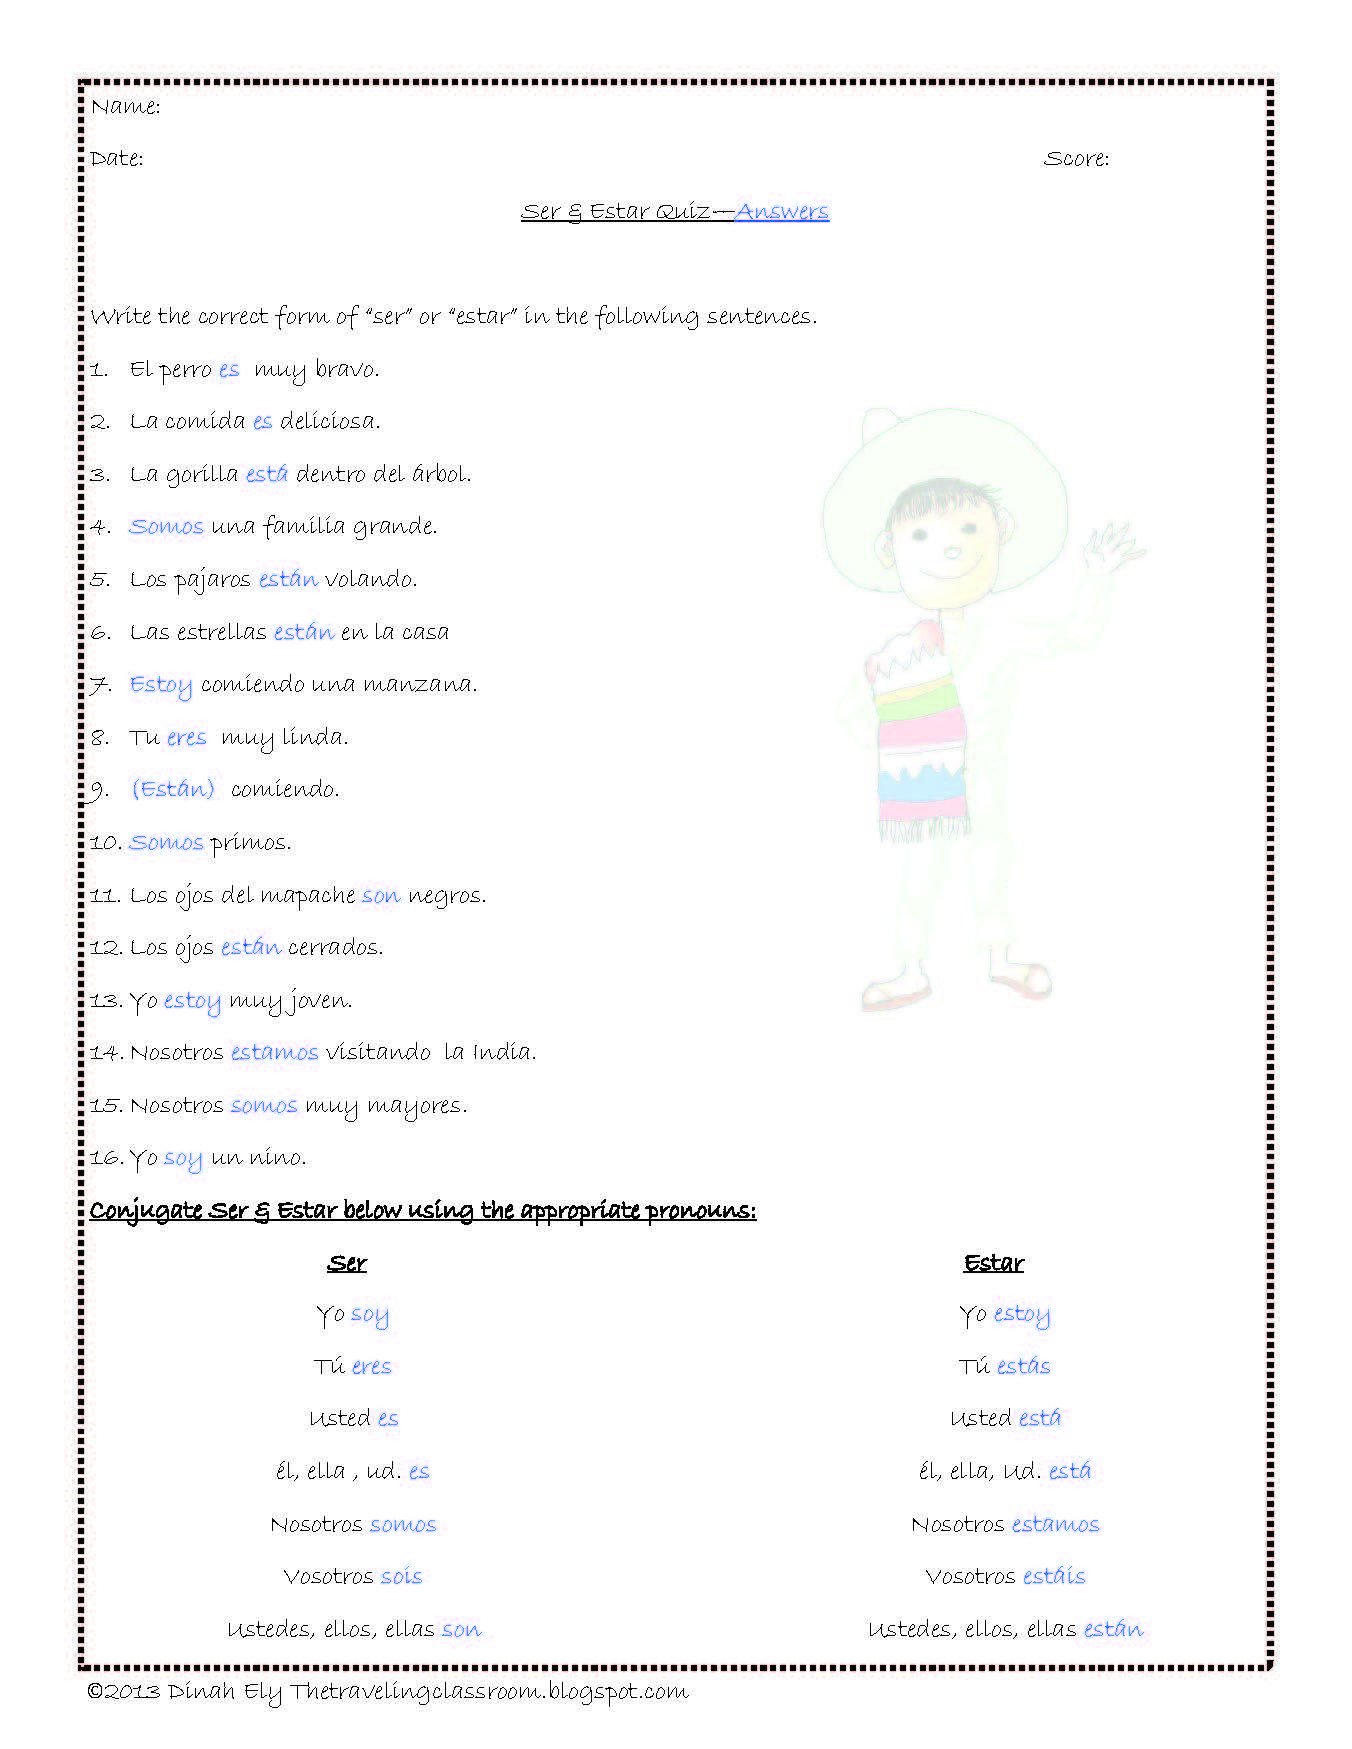 Spanish Verb Conjugation Worksheets Printable Spanish Verbs Ser Estar Tener Vivir Er & tomar